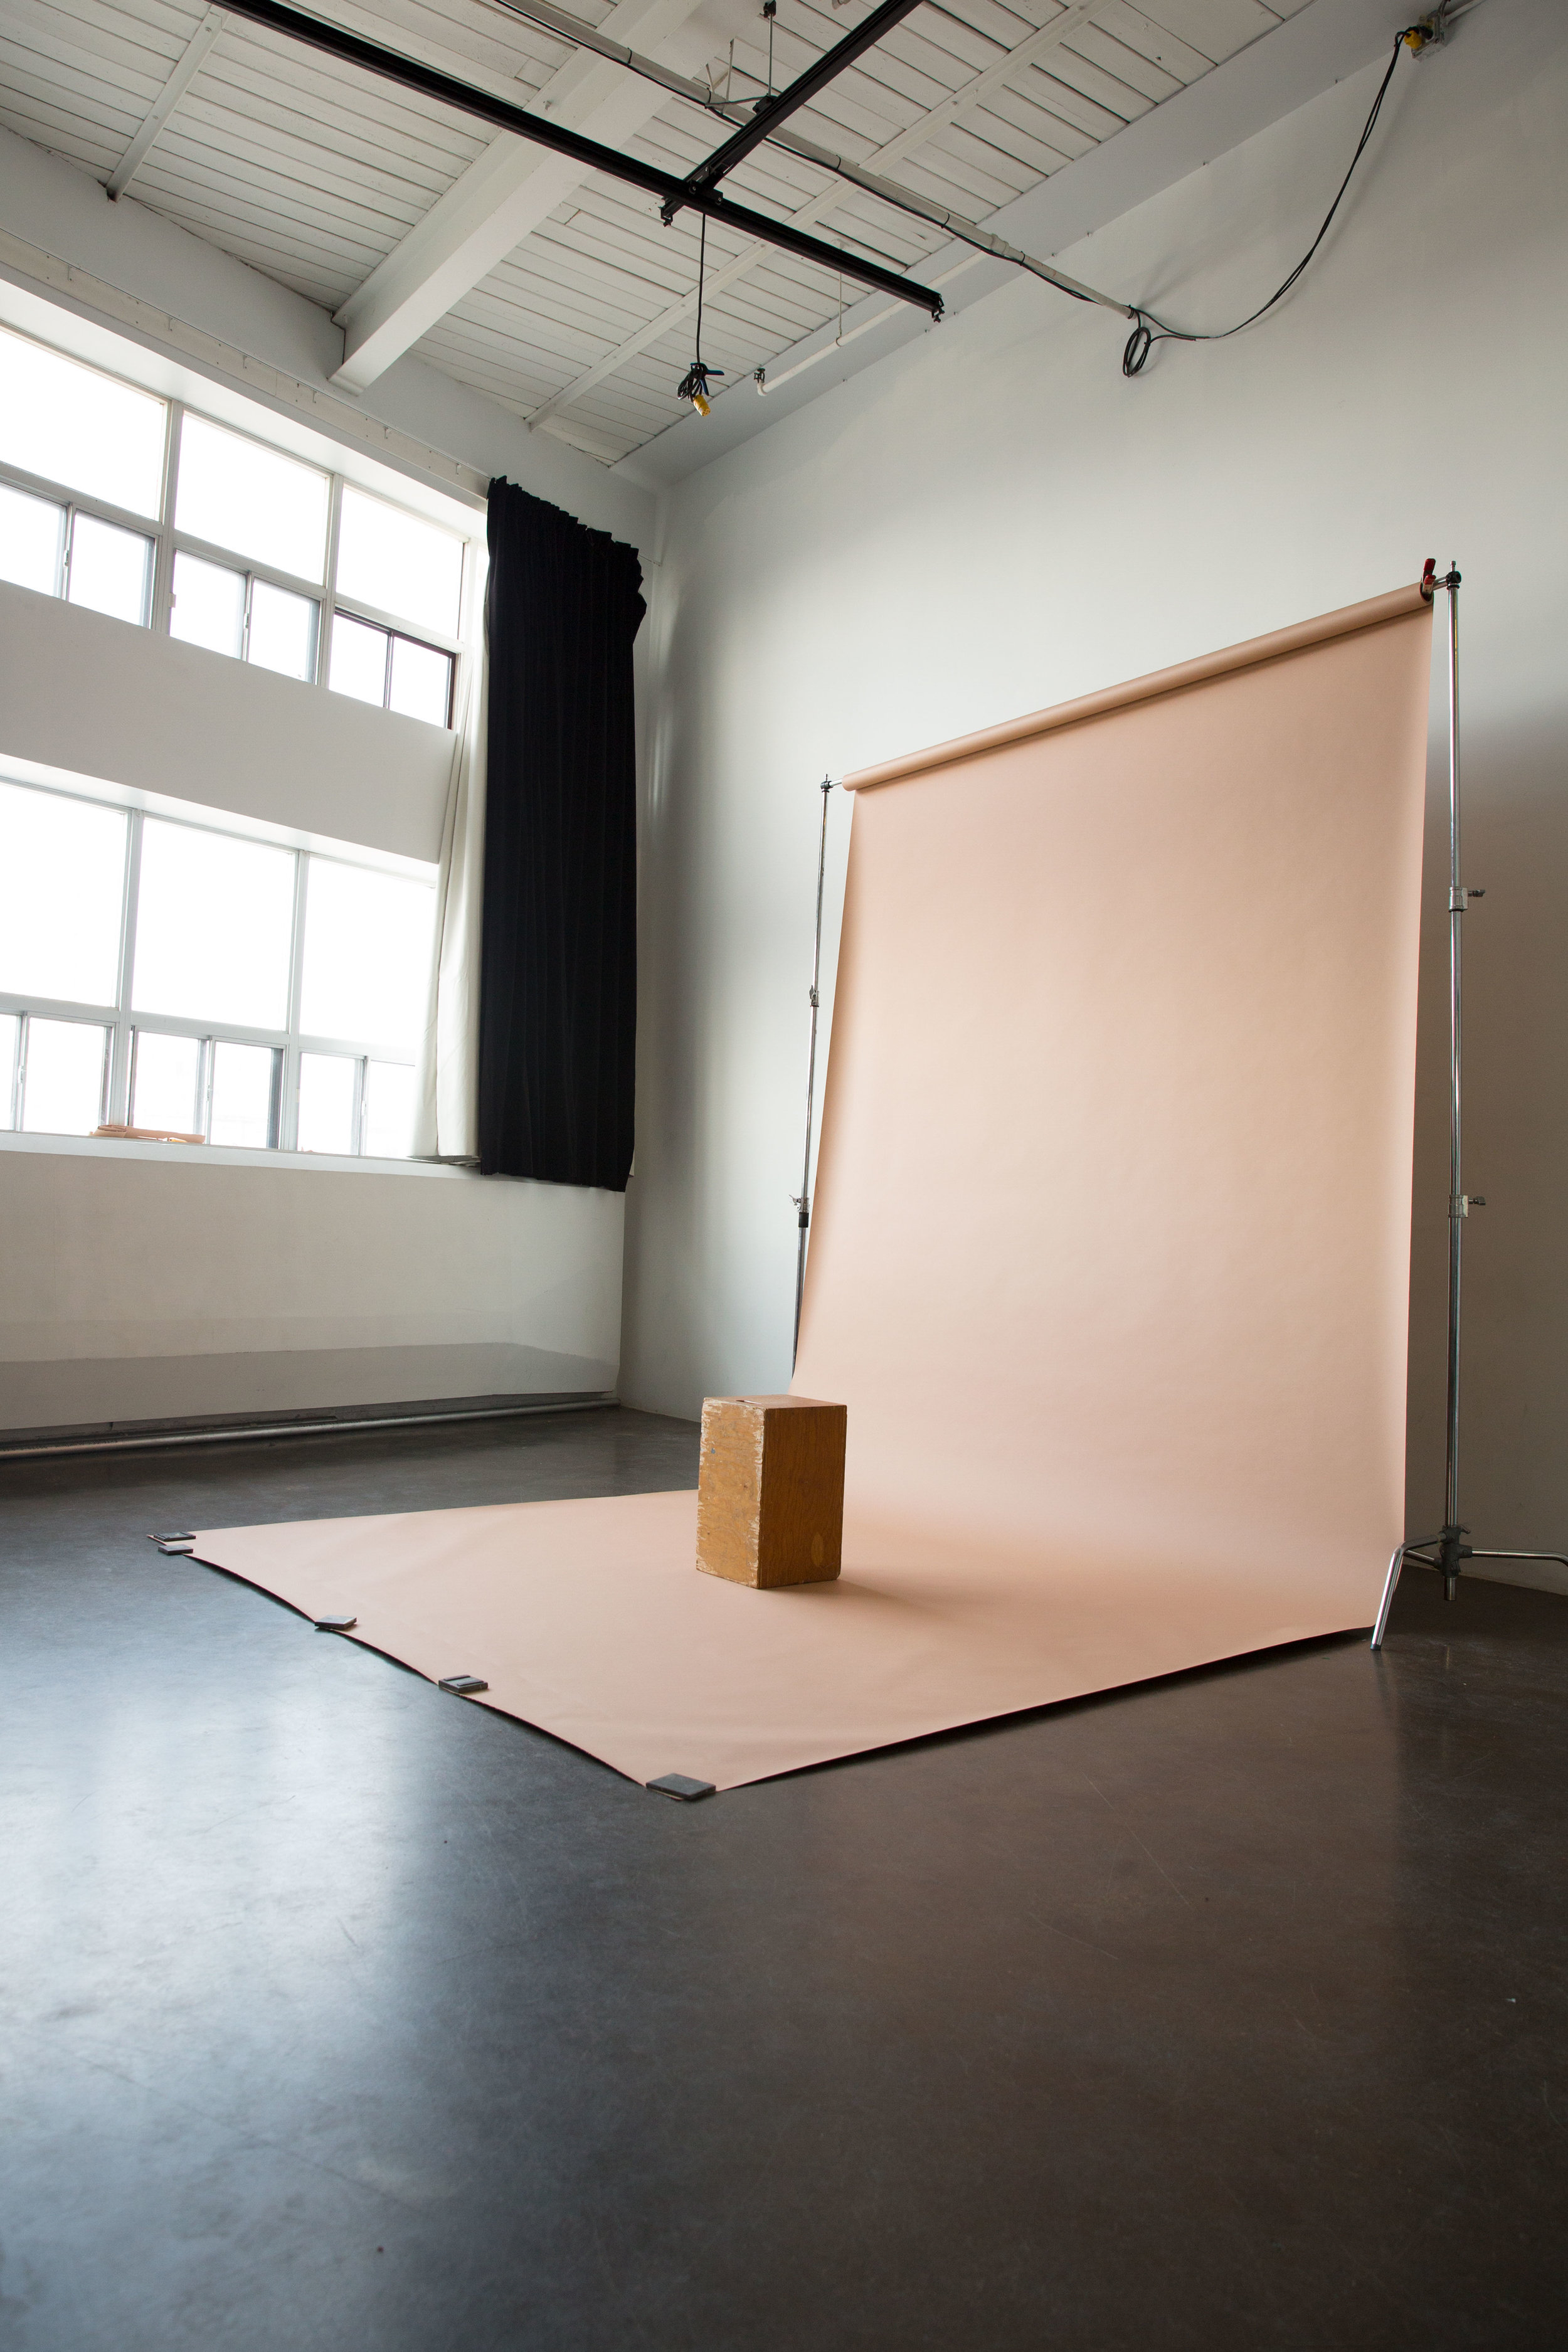 9 ft. wide$5 per ft. - We have a wide selection of 9ft coloured backdrops available. If a specific colour is required please inquire about available colours before your shoot. Backdrops can only be handled by Working Proof staff. The balance for used backdrop is due on the day of your shoot.